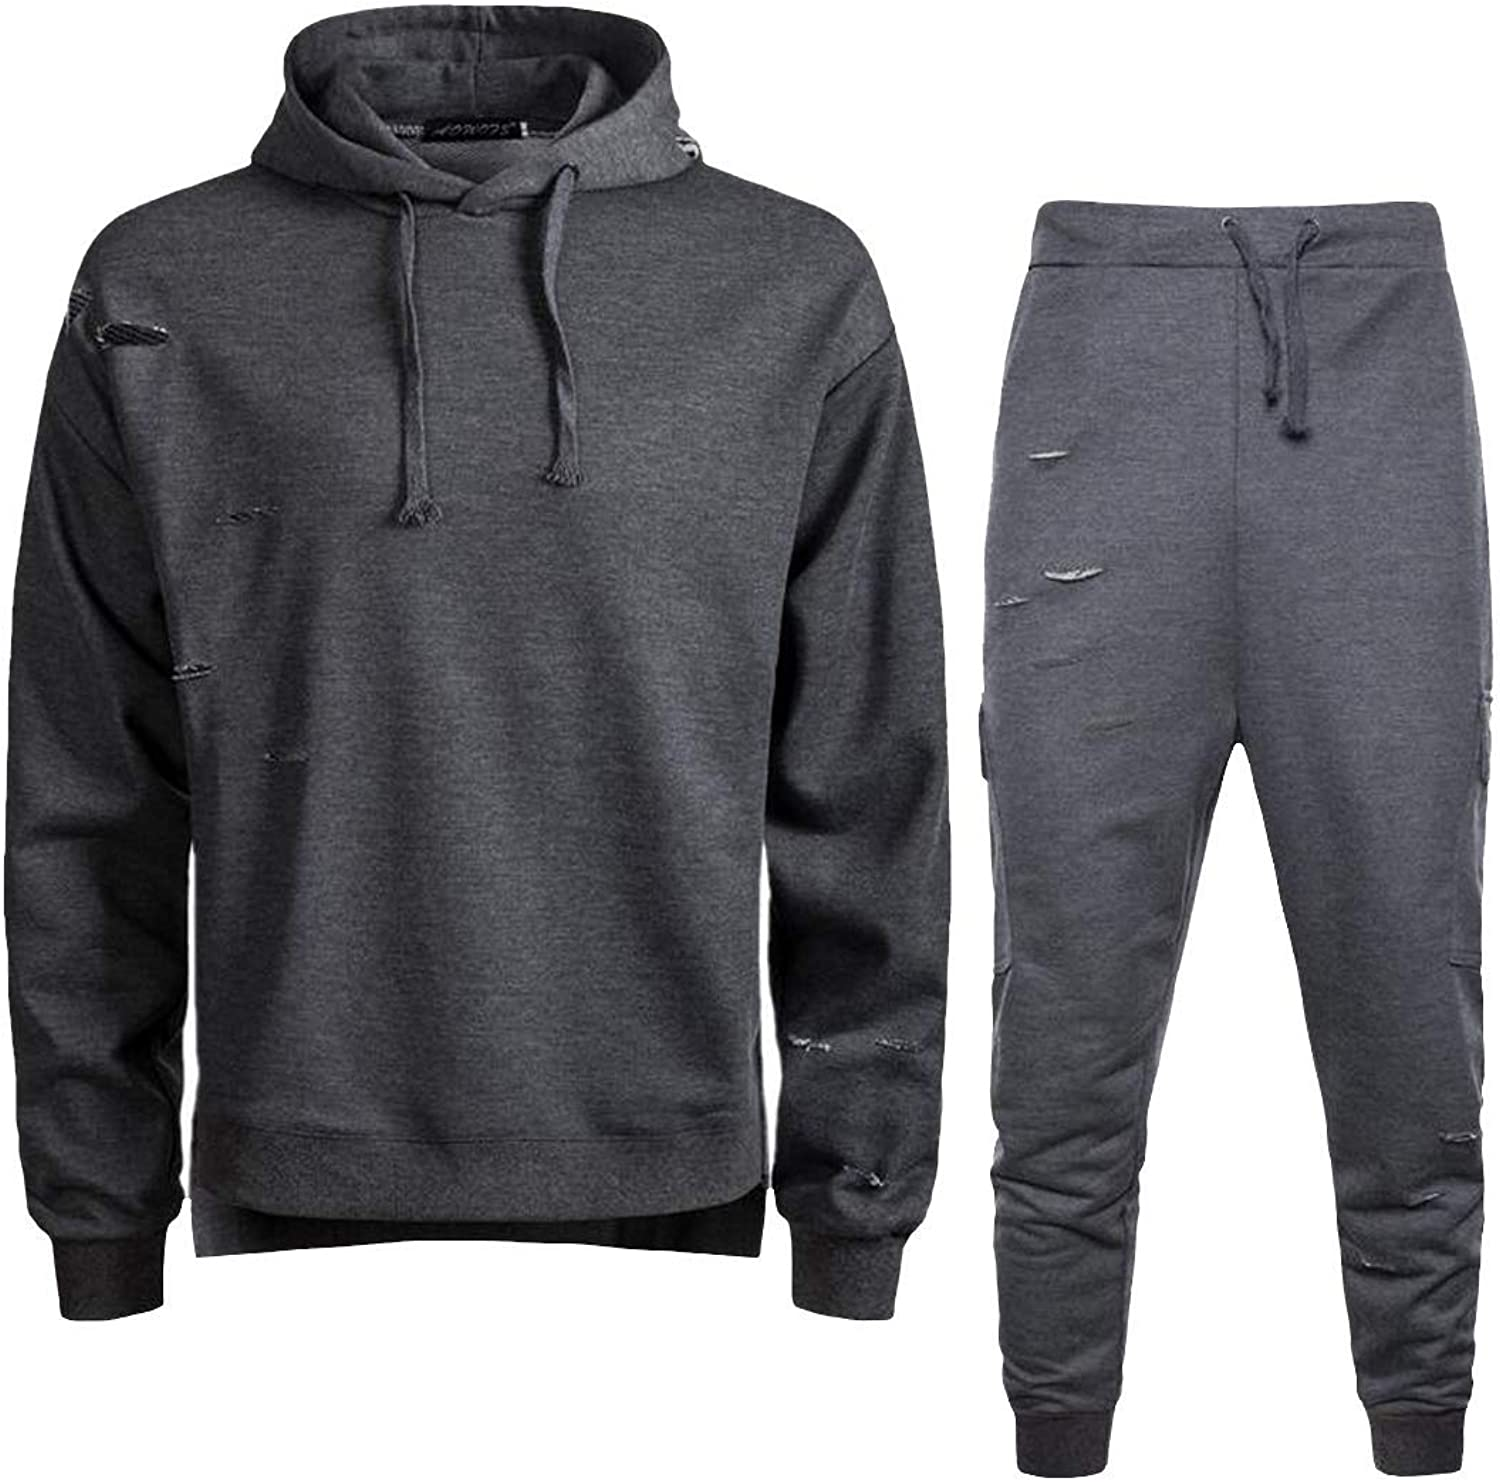 Joe Wenko Men Pure color Hooded Two Pieces Sports Hole Sweatpants Big Tall Tracksuit Set